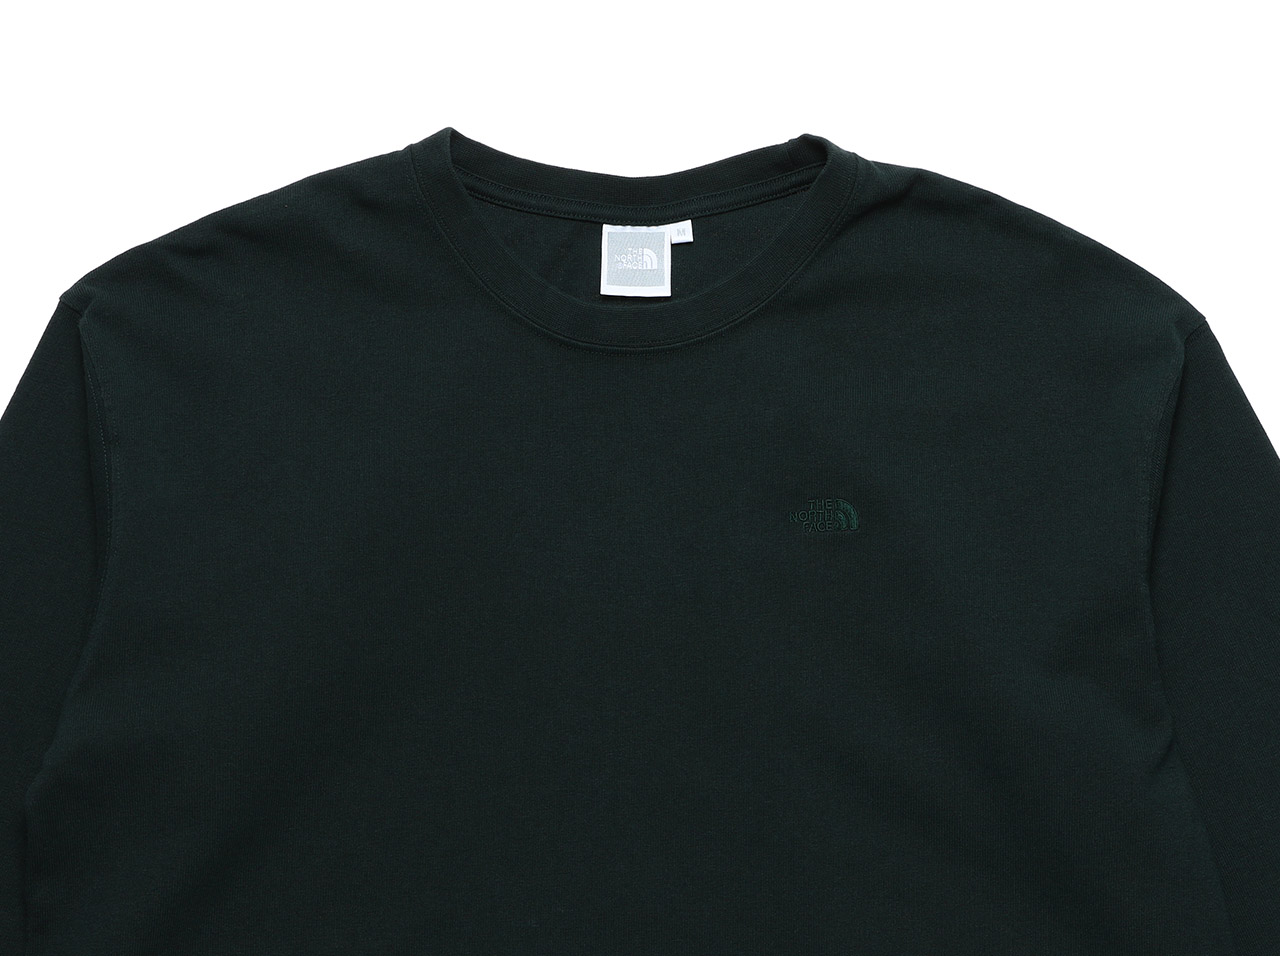 THE NORTH FACE L/S Nuptse Cotton Tee - NTW82036